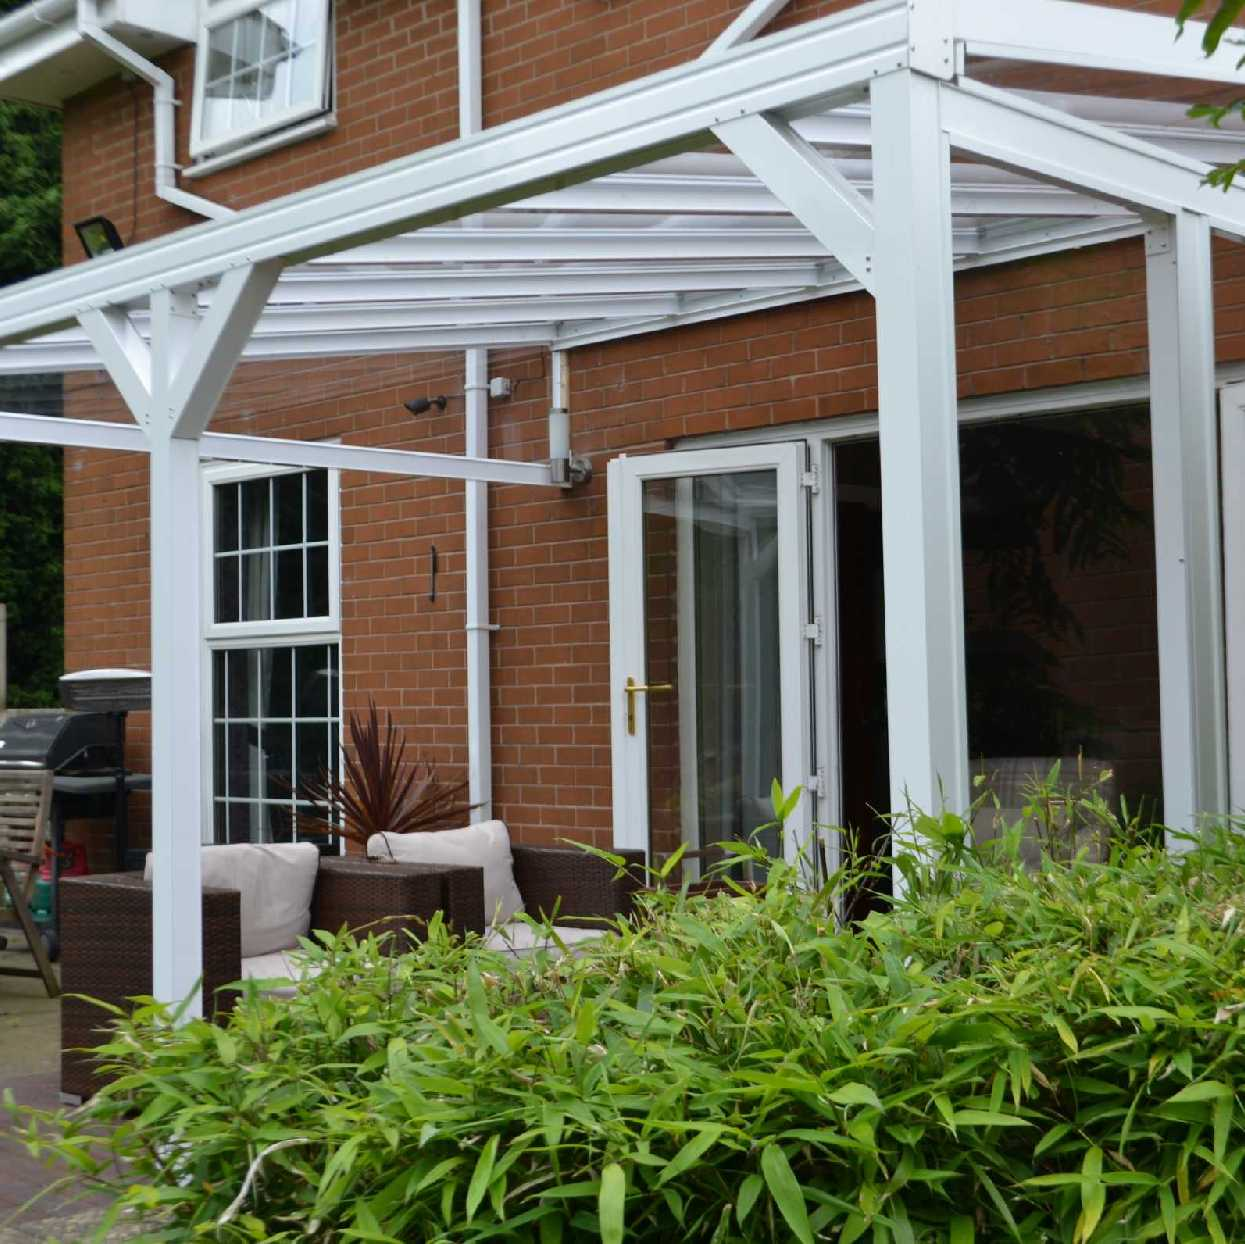 Omega Smart Lean-To Canopy with 6mm Glass Clear Plate Polycarbonate Glazing - 5.2m (W) x 4.0m (P), (3) Supporting Posts from Omega Build